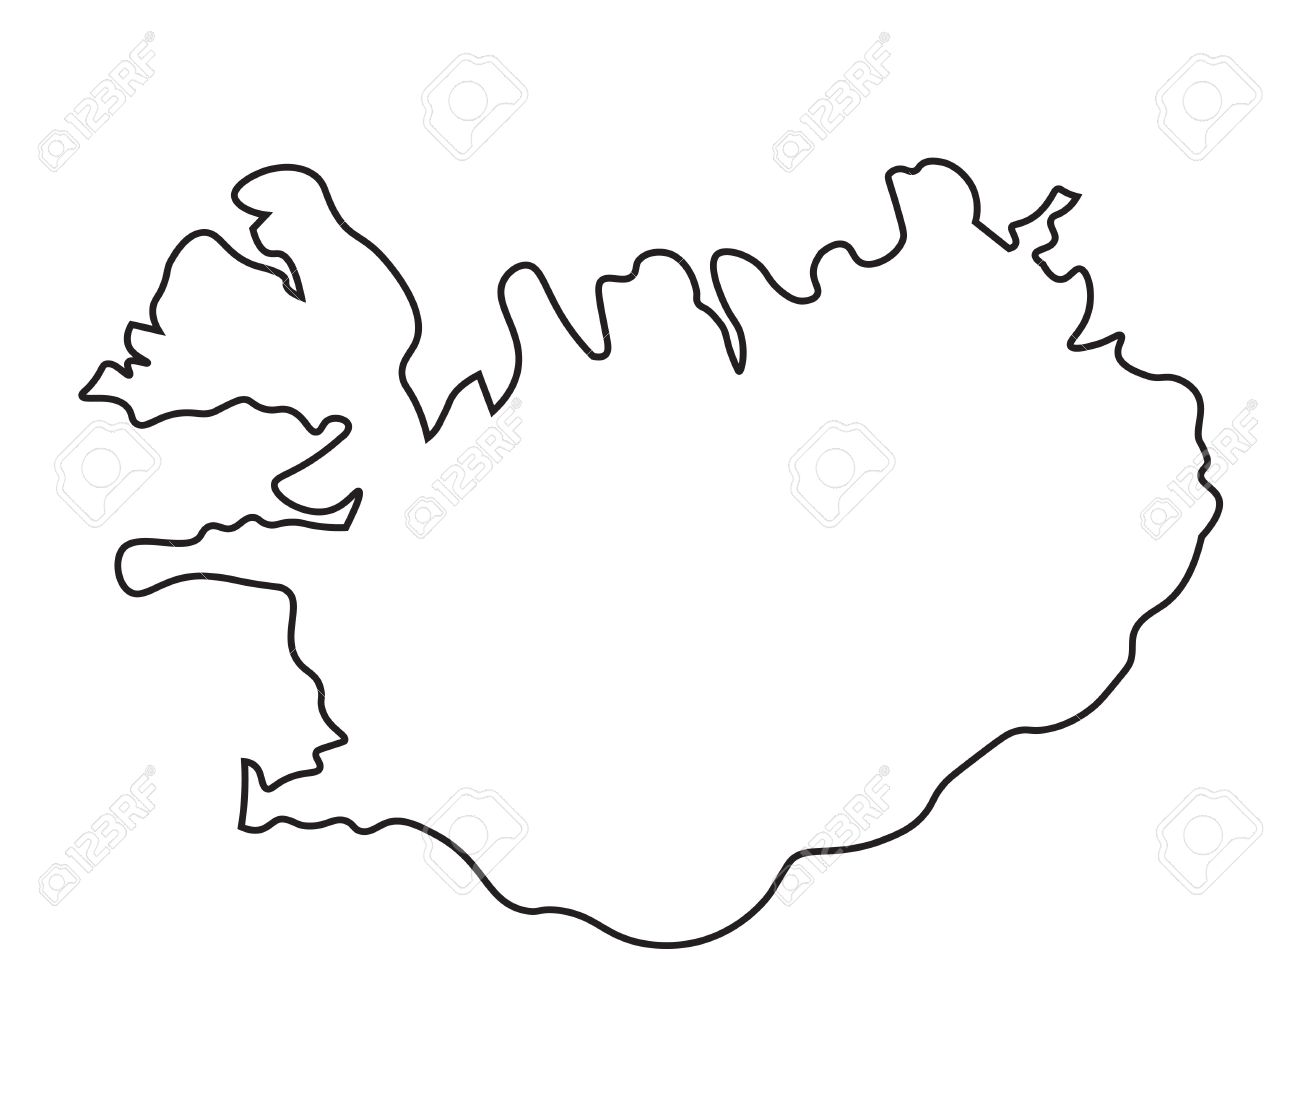 Image of: Black Abstract Map Of Iceland Royalty Free Cliparts Vectors And Stock Illustration Image 37456821